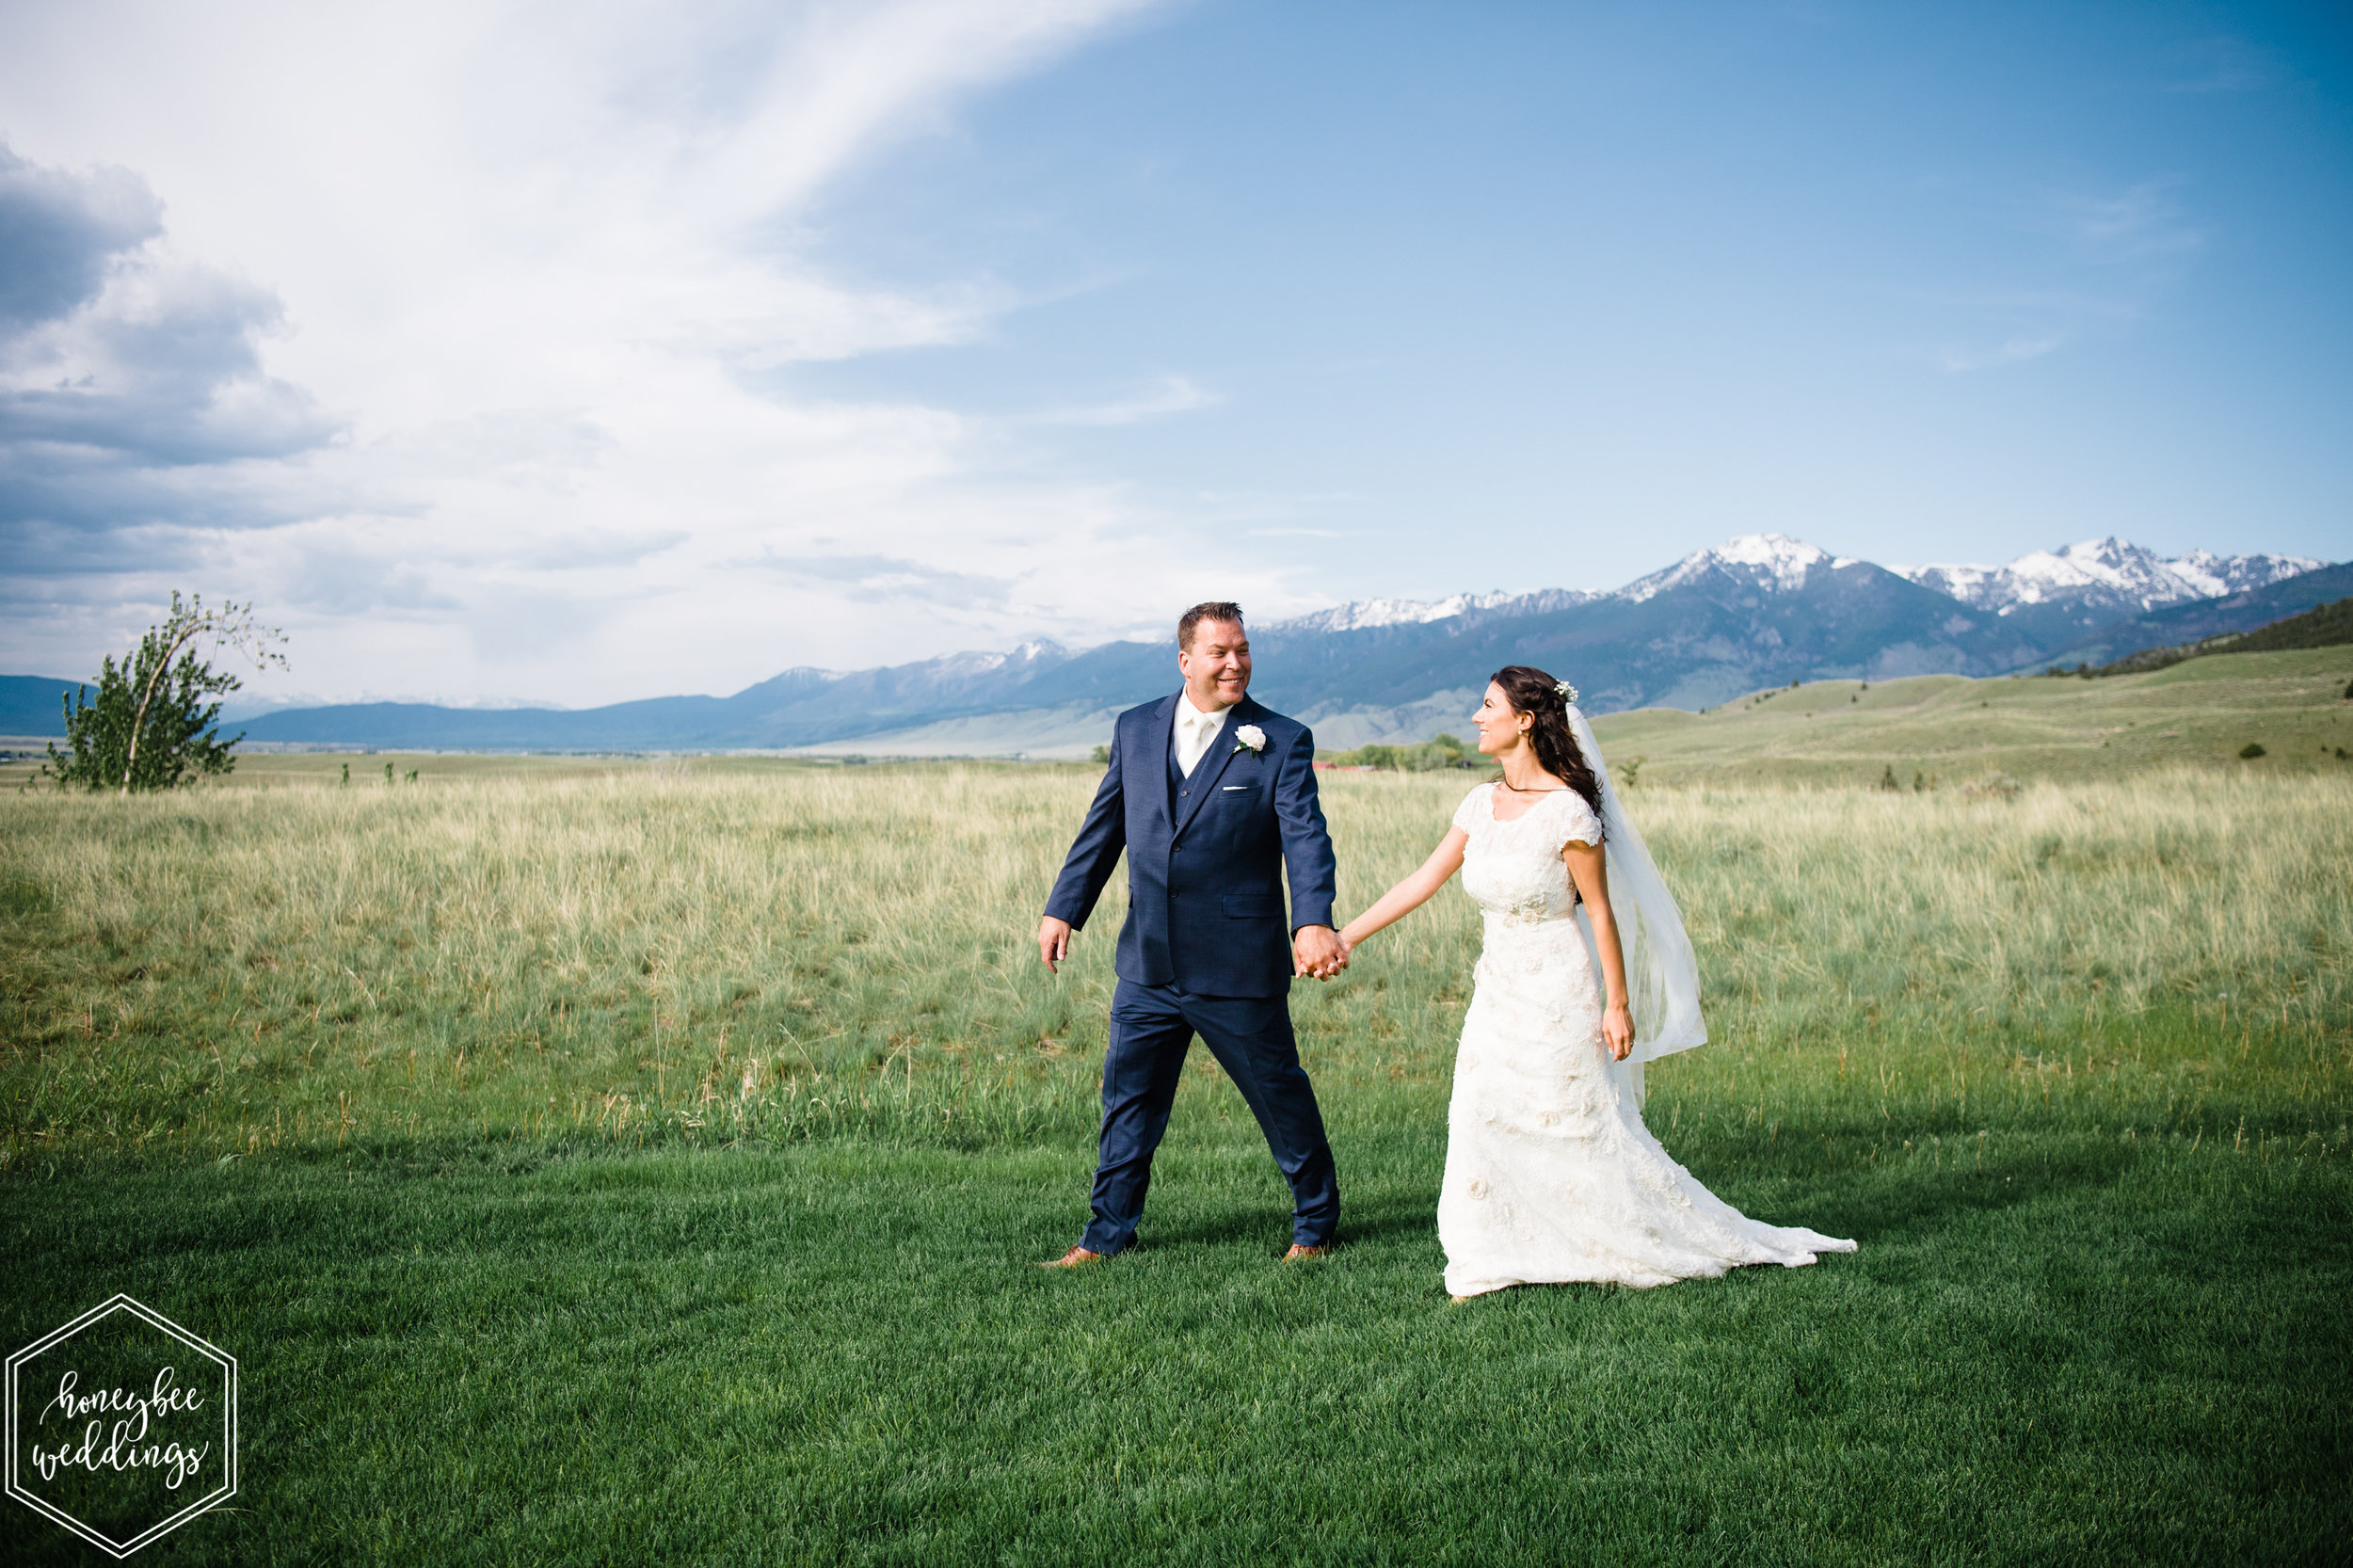 021Montana wedding photographer videographer_Chico hot springs wedding_Honeybee Weddings_Claudia & Bill_June 03, 2019-563.jpg